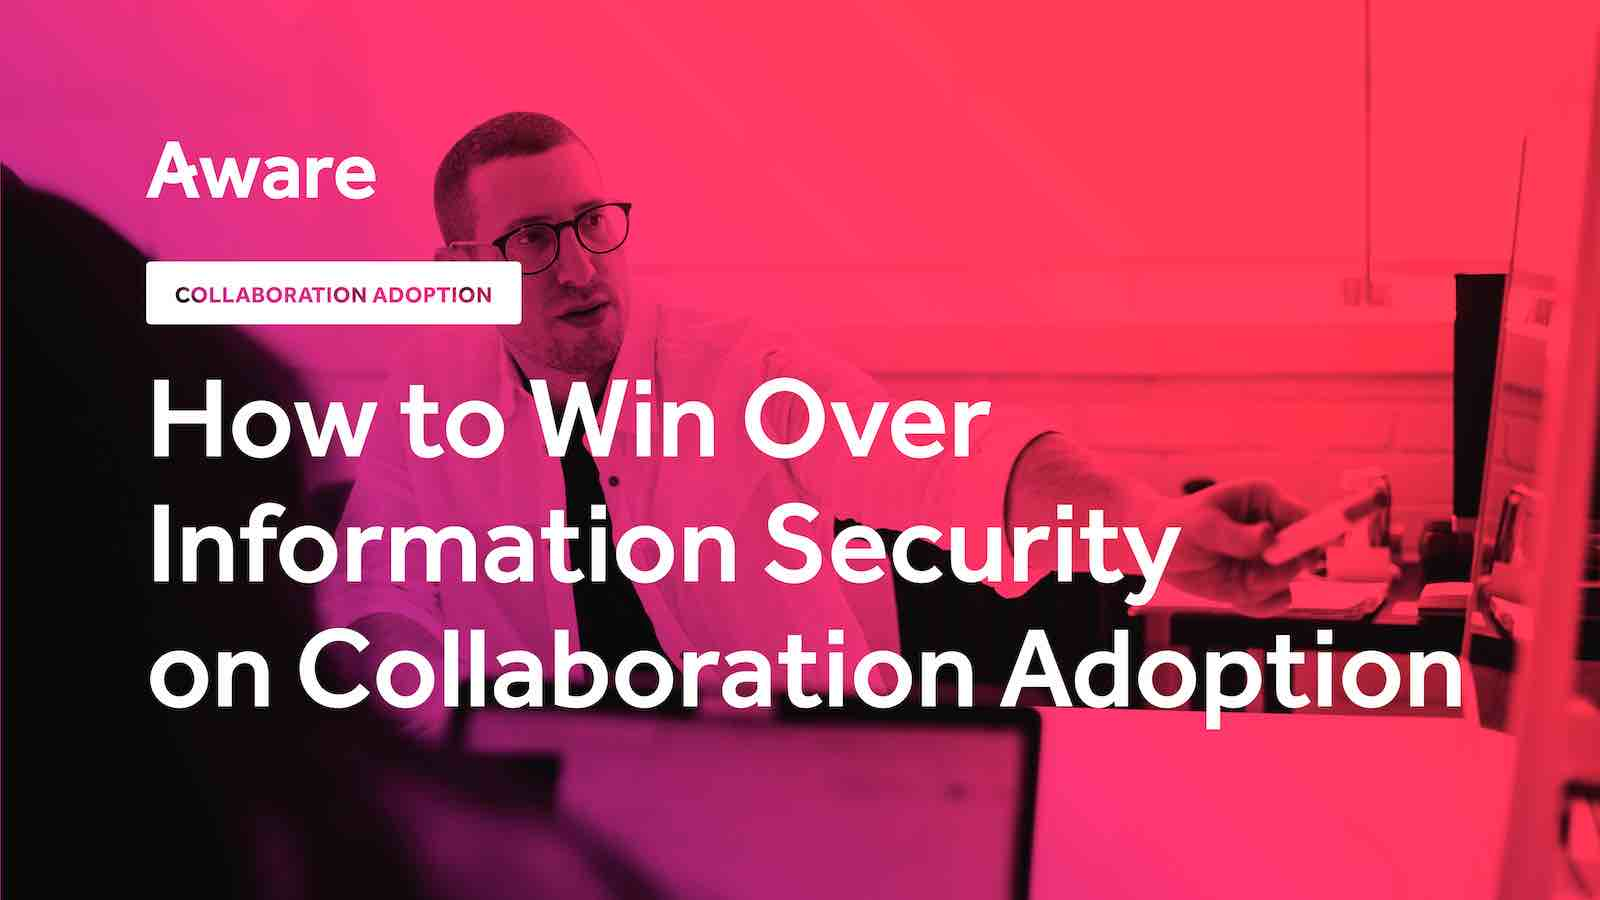 How to Win Over Information Security on Collaboration Adoption